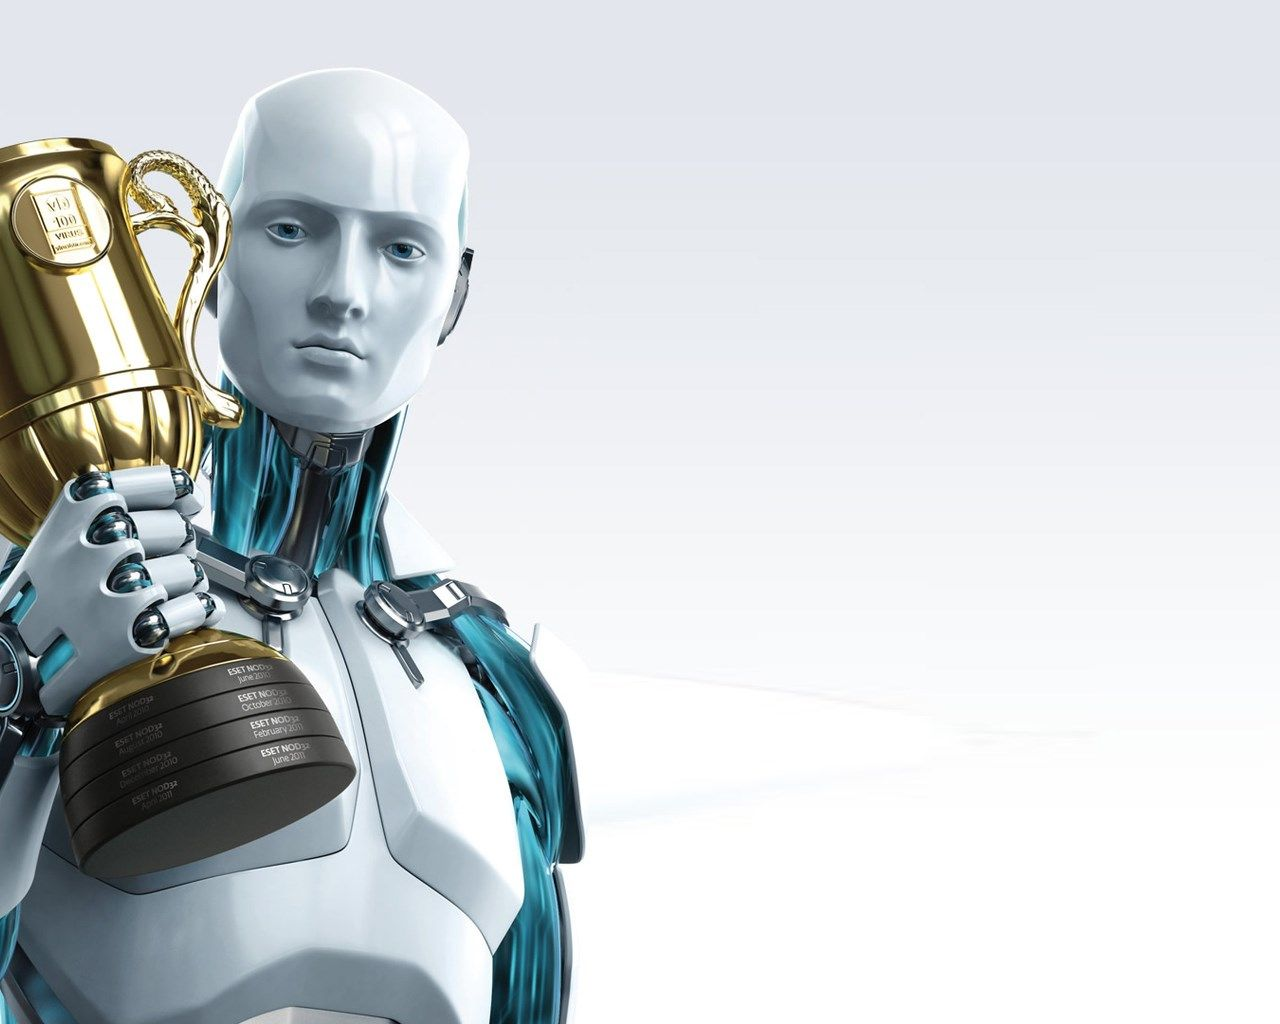 robot image High Definition Backgrounds 1280x1024 118 kB 1280x1024